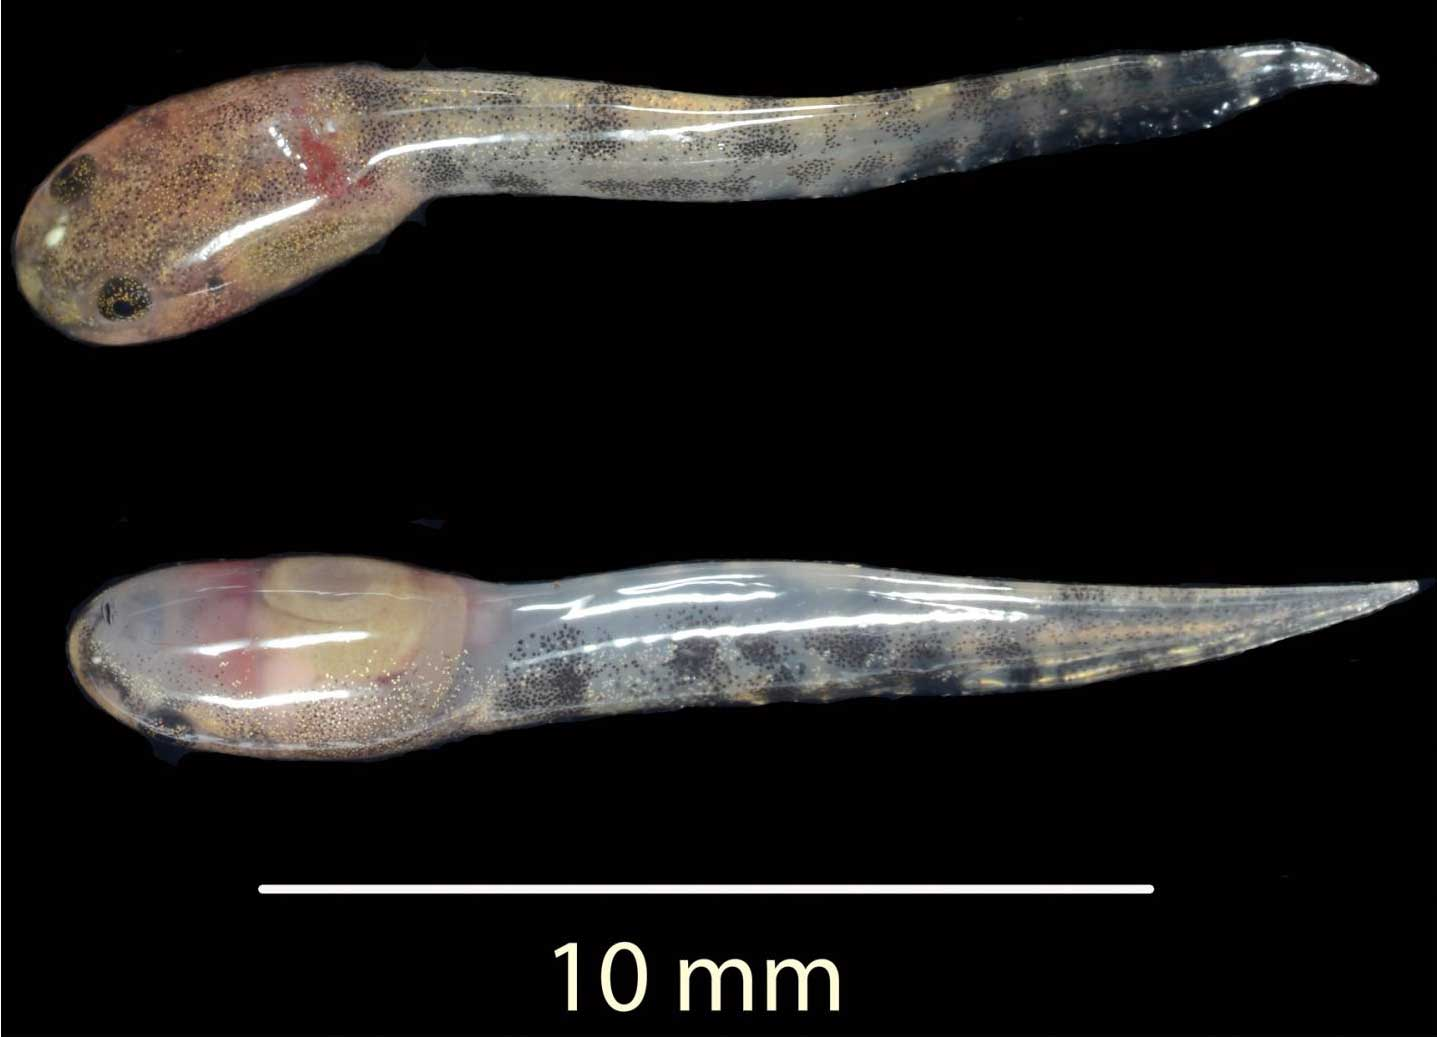 Two tadpoles, each about 10 millimeters long, shortly after birth.